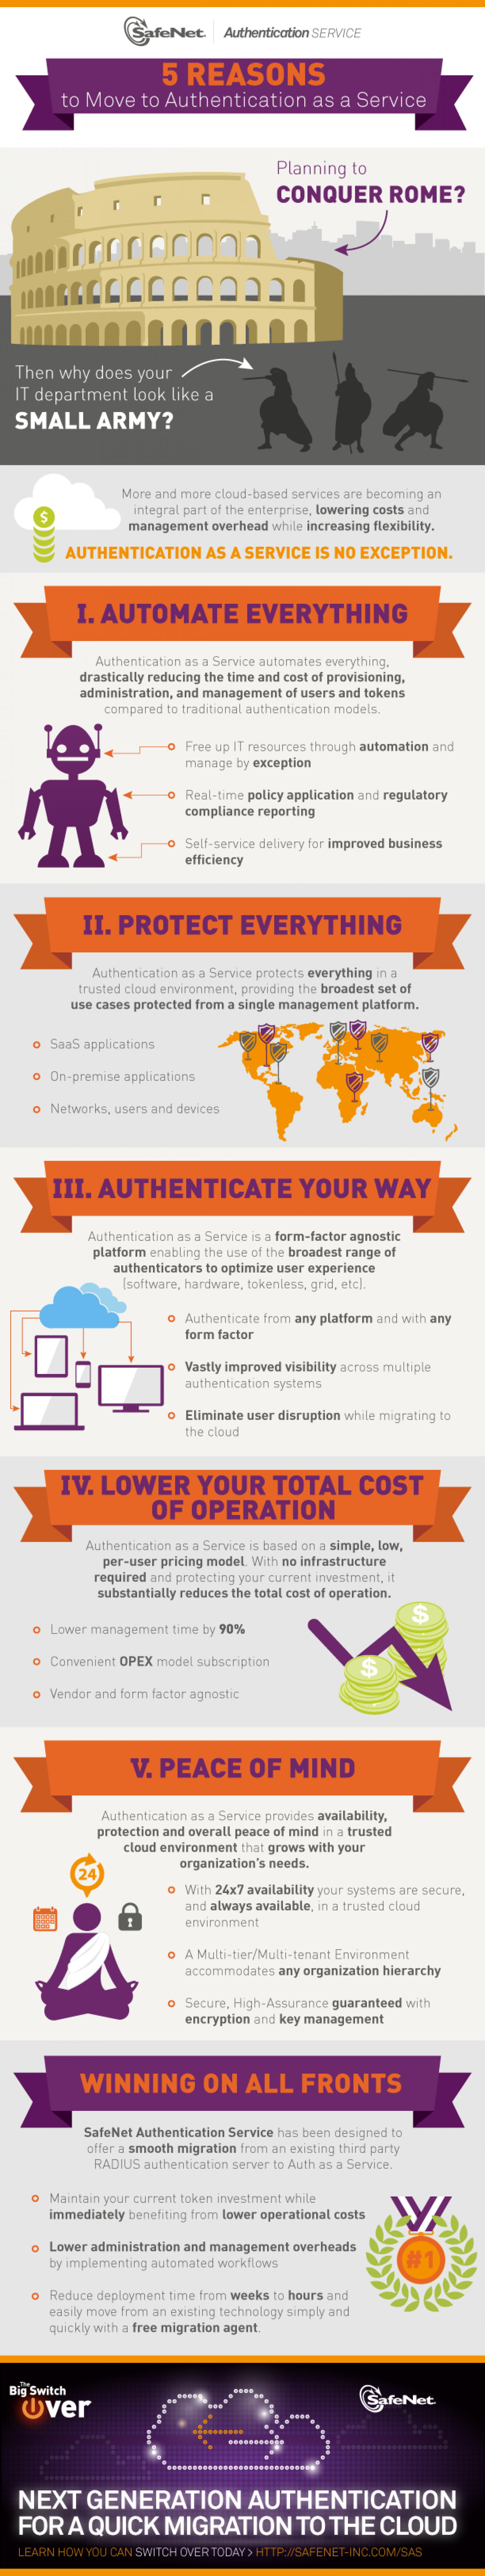 5 Reasons to Move to Authentication as a Service Infographic